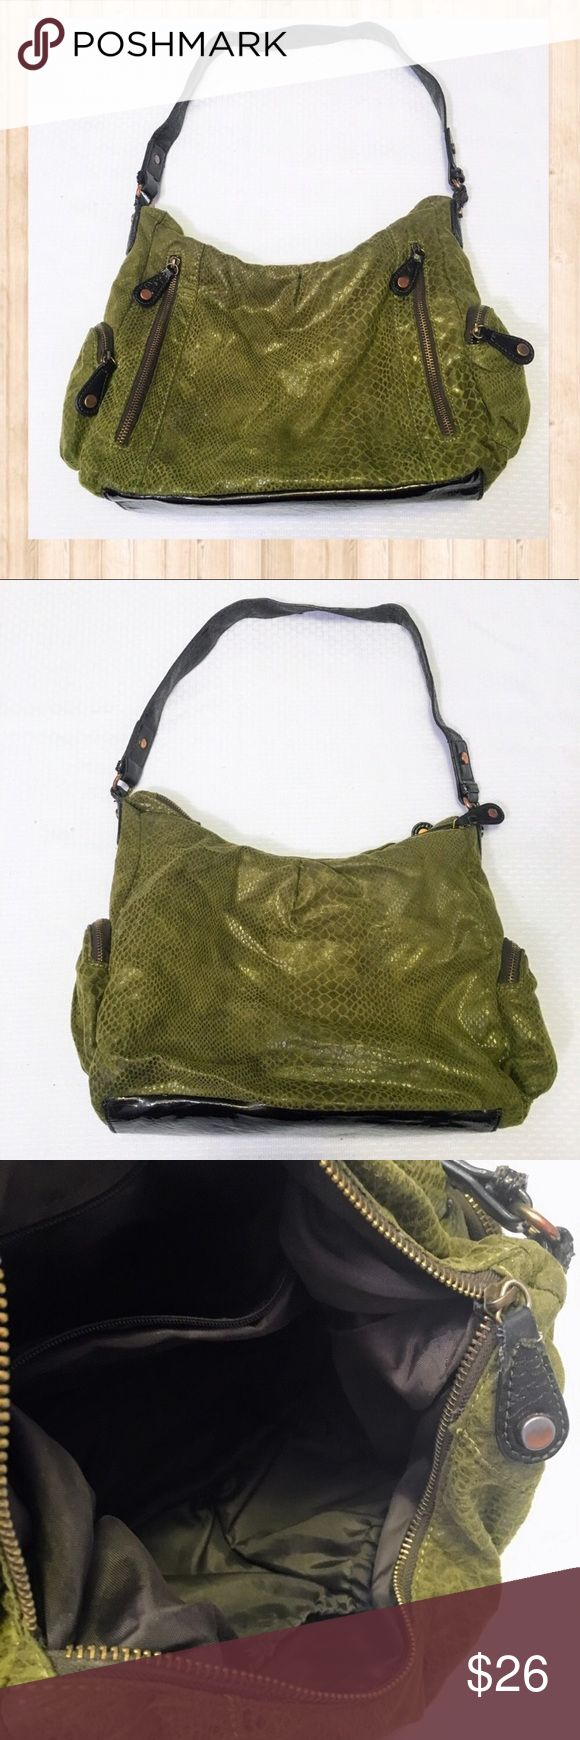 "Apt. 9 green crocodile green shoulder bag Apt. 9 green slouchy crocodile print green shoulder bag. Functional side pockets. General signs of wear throughout. Height: 10"" Width: 15"" Depth: 5"". Apt. 9 Bags Shoulder Bags"